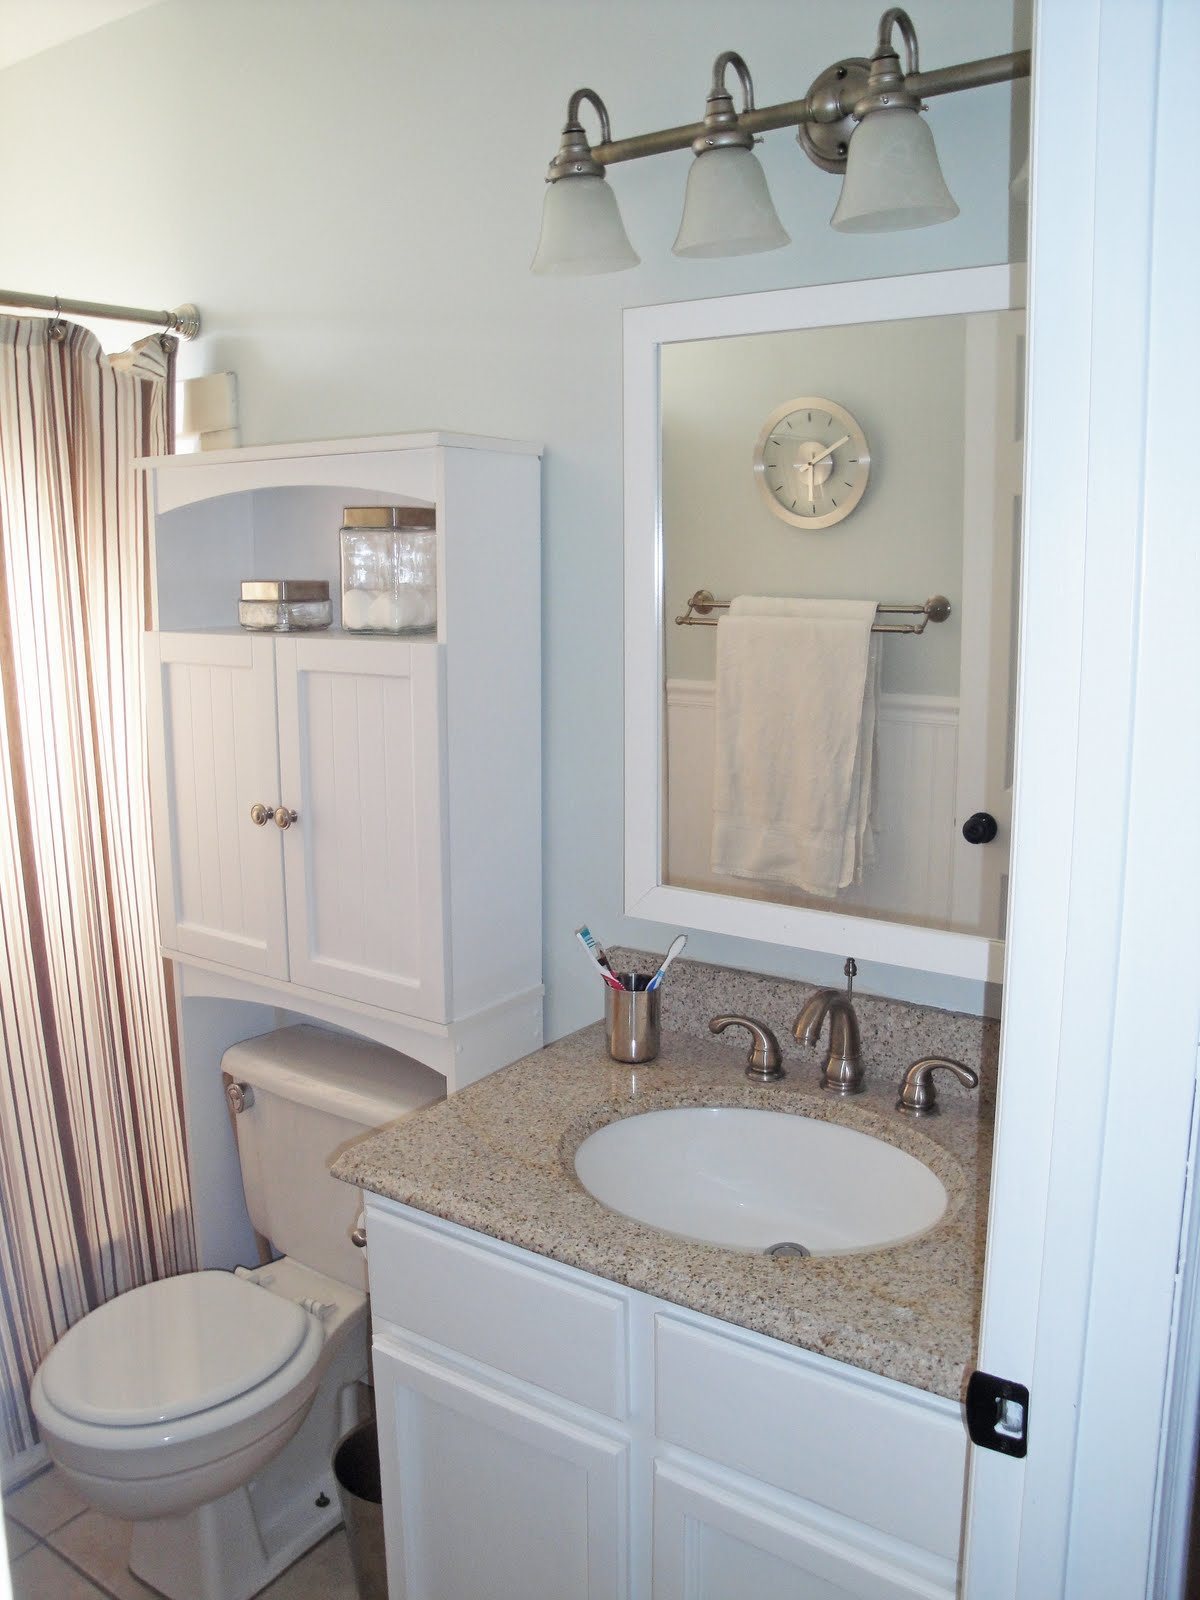 My random life story august 2011 - Bathroom vanities small spaces decoration ...